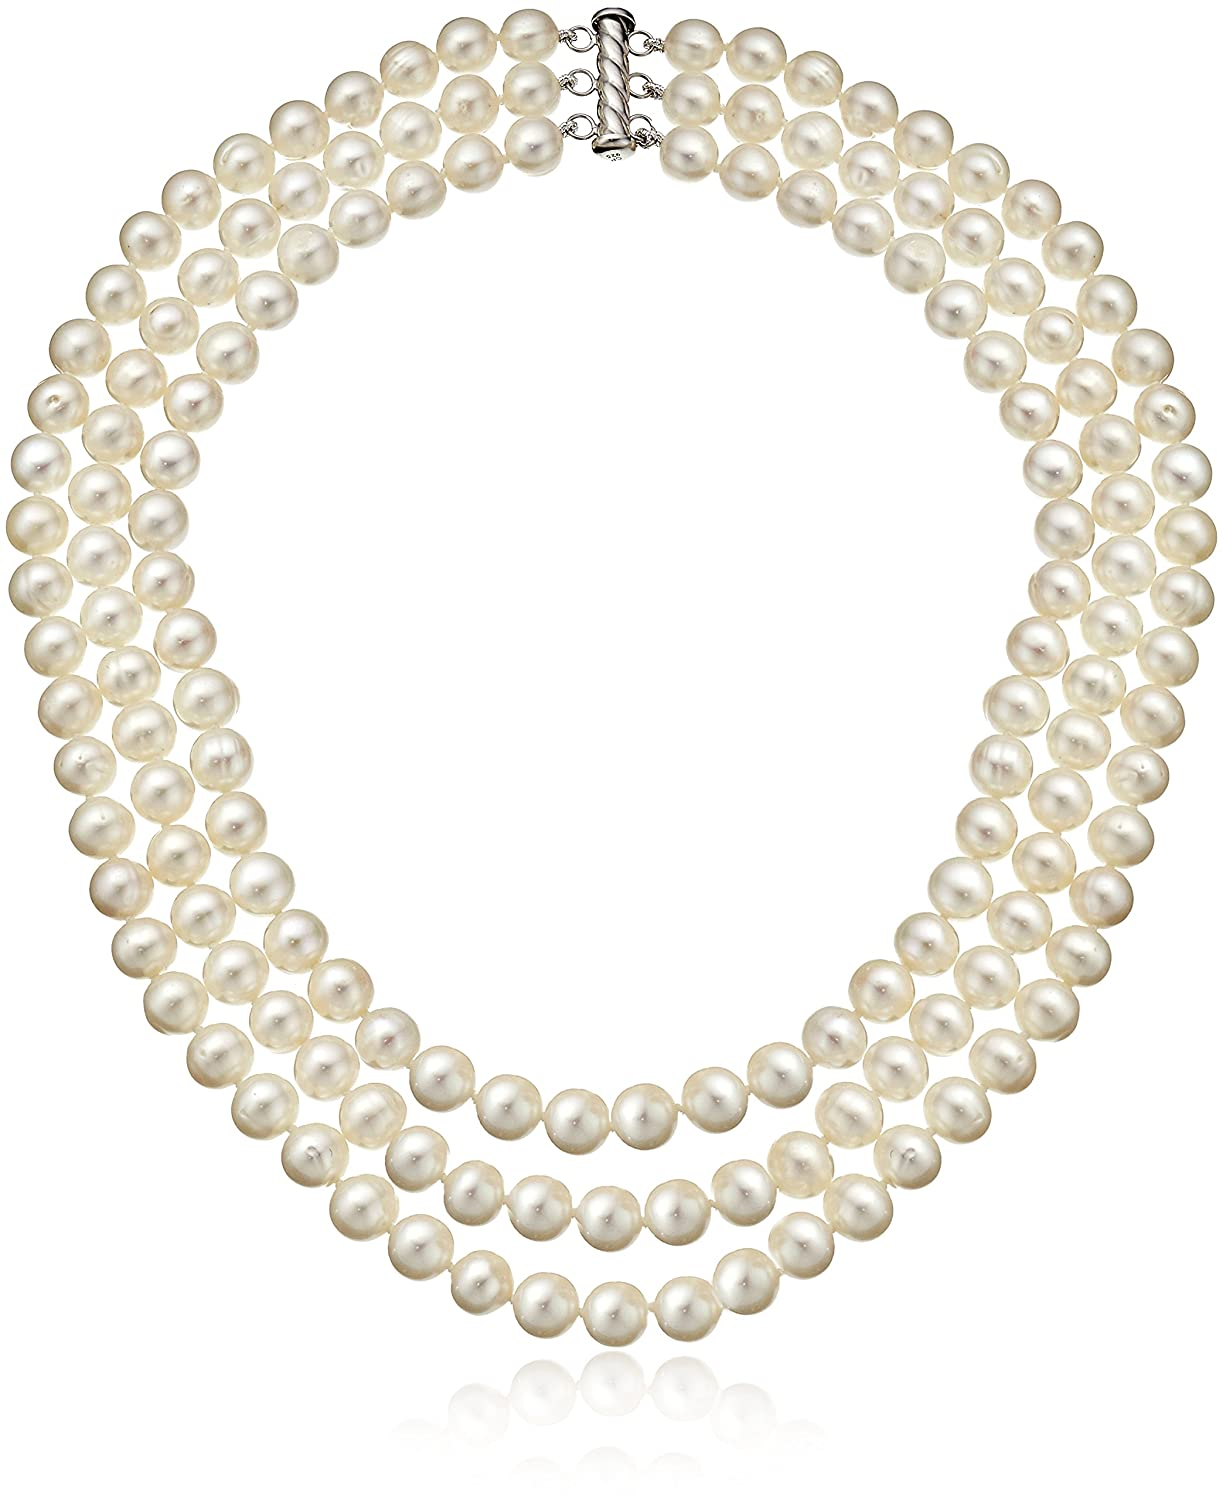 Sterling Silver 3-Row Freshwater Cultured Pearl Strand (7-7.5mm) Amazon Collection QN-11374-AMV